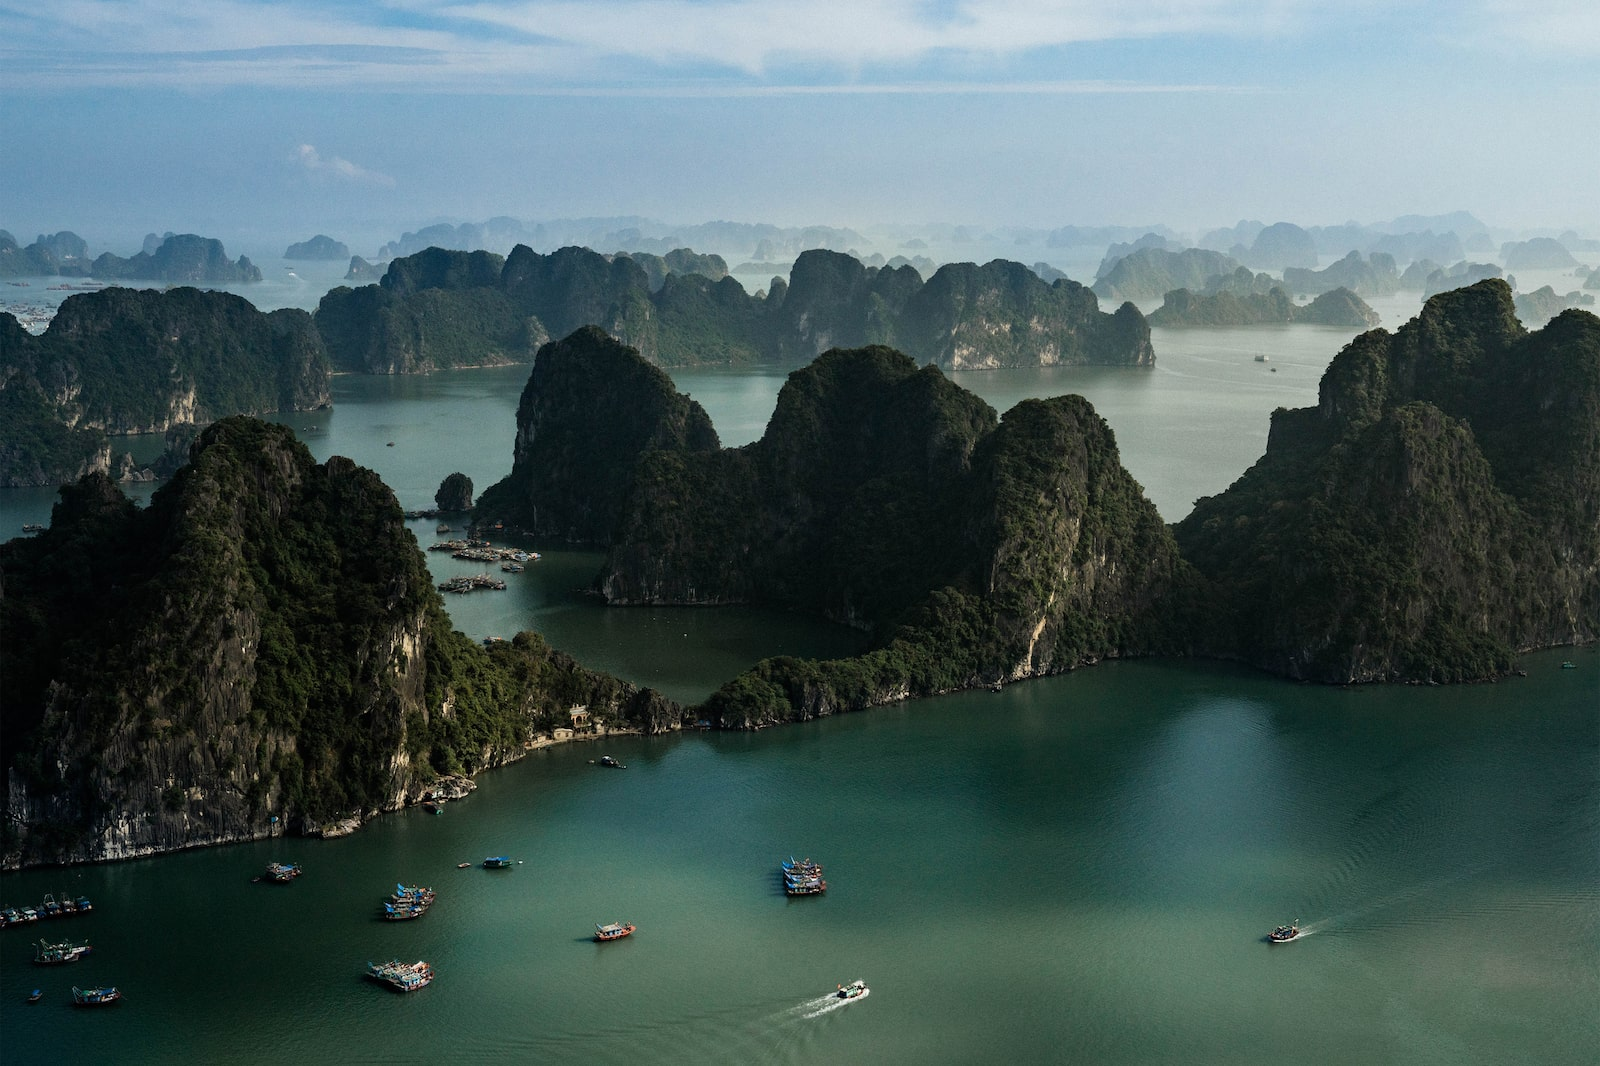 Aerial view of Ha Long Bay islands